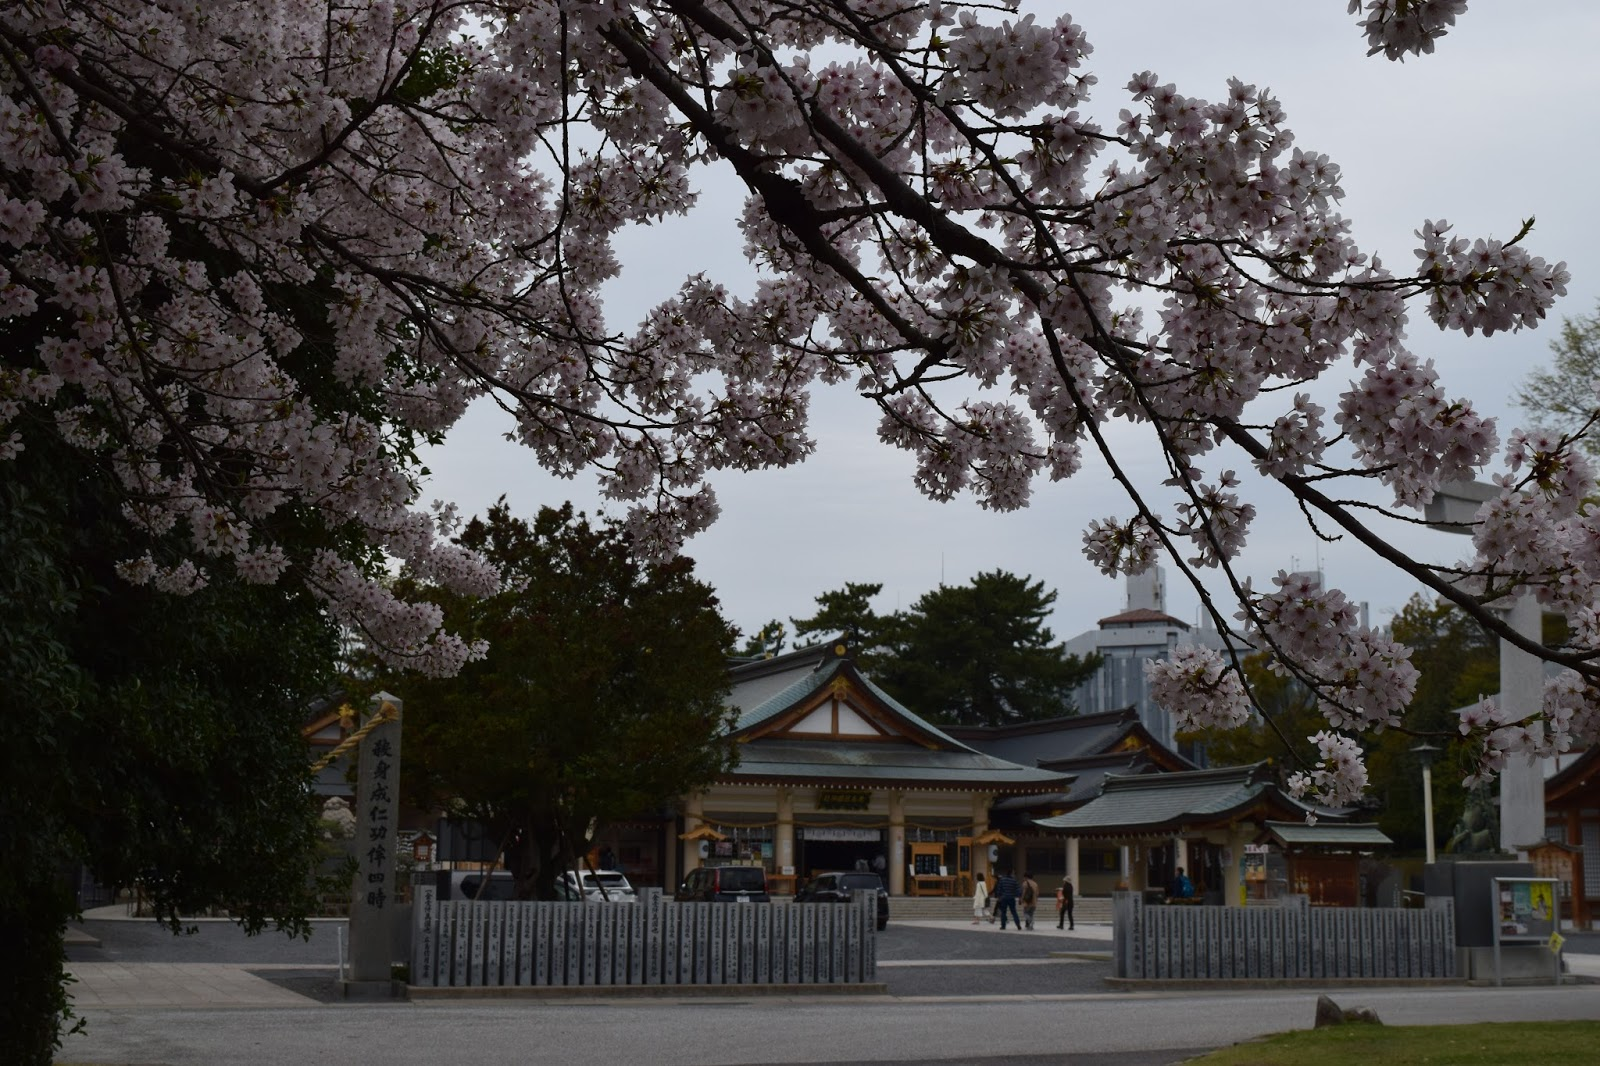 Shrine and Cherry blossom